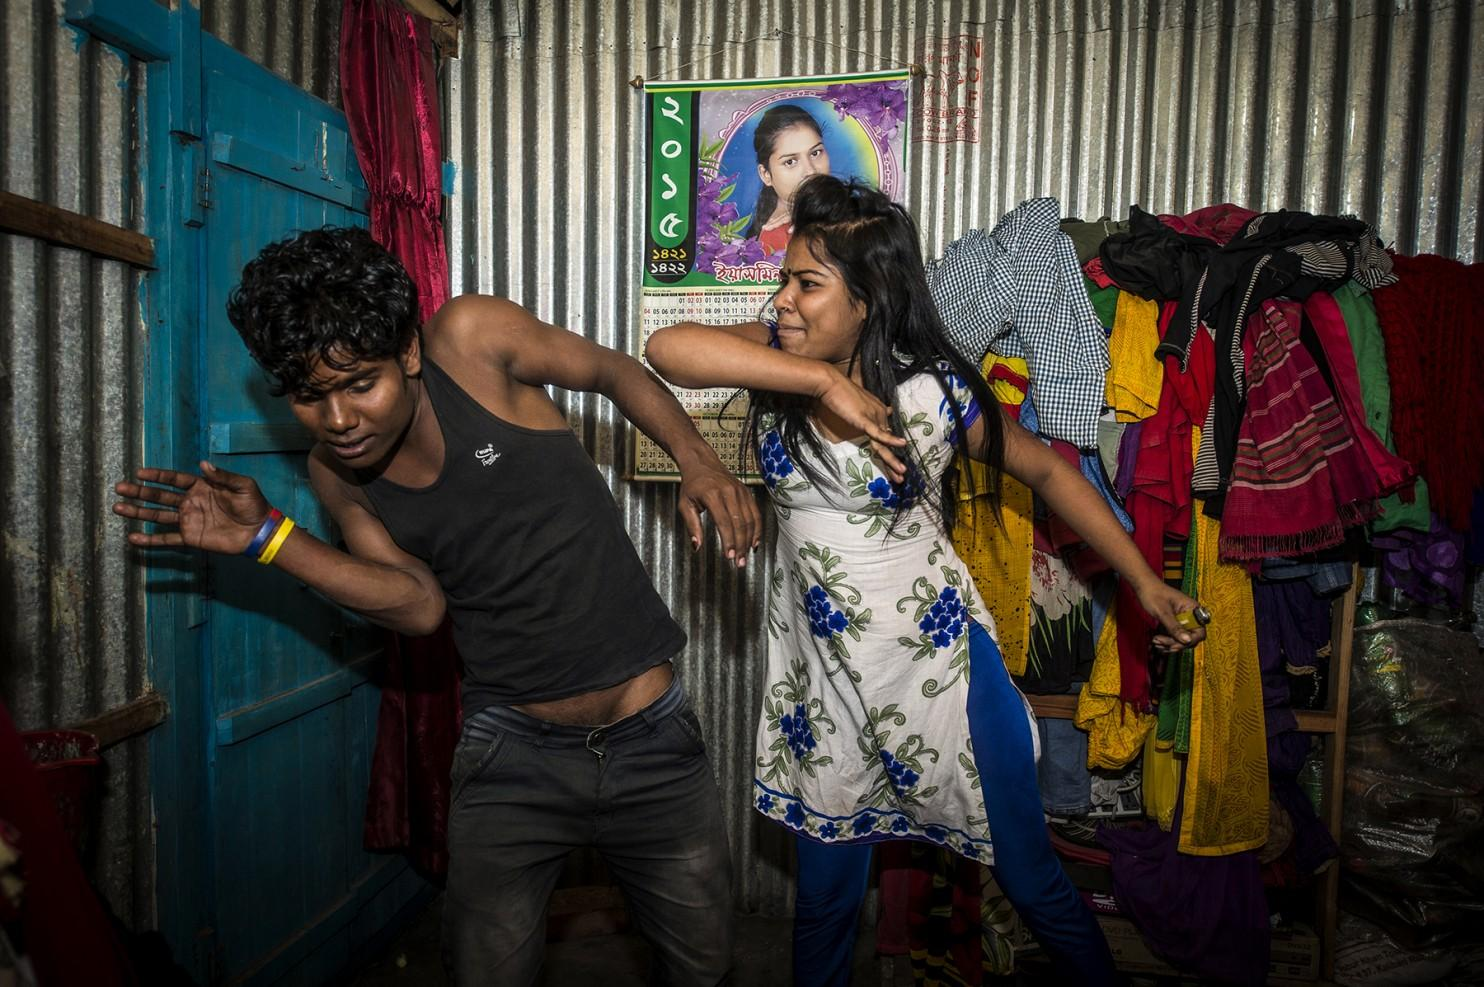 Report on sex workers in bangladesh